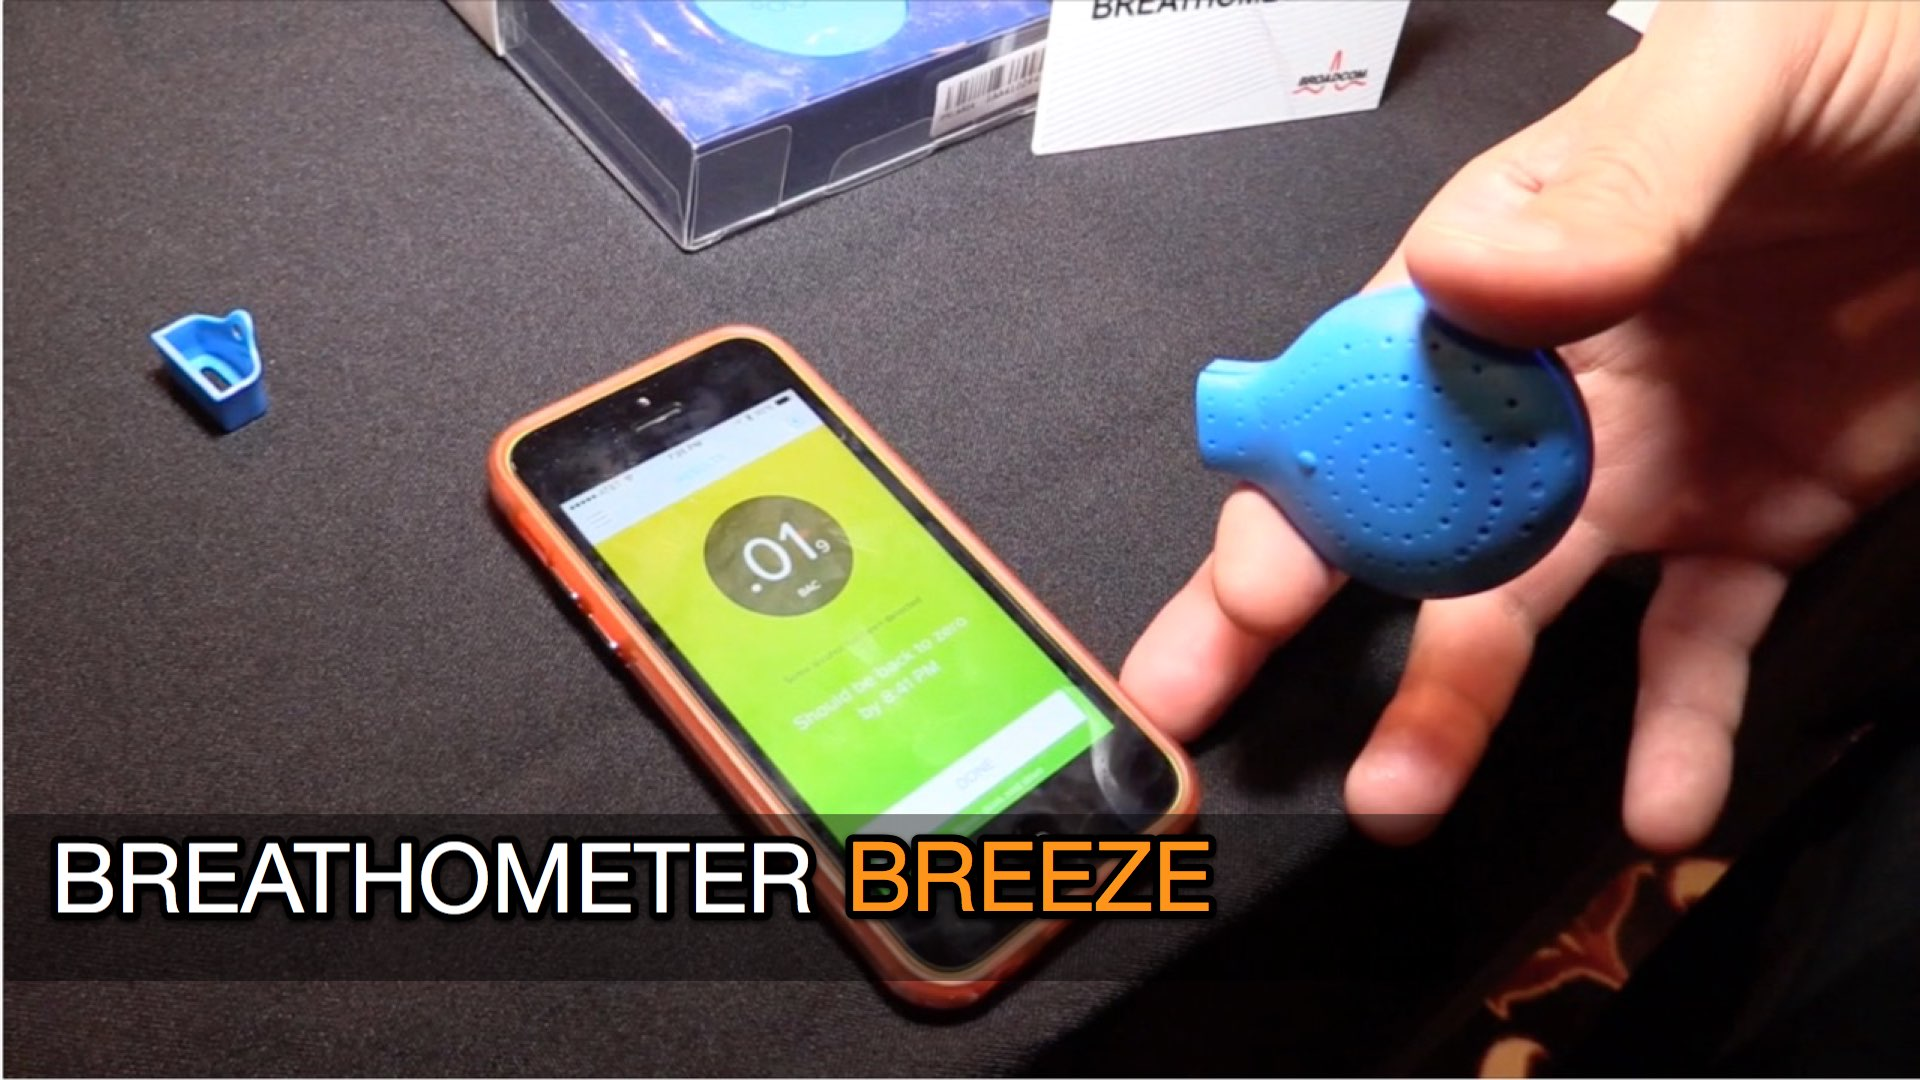 Breathometer corporation